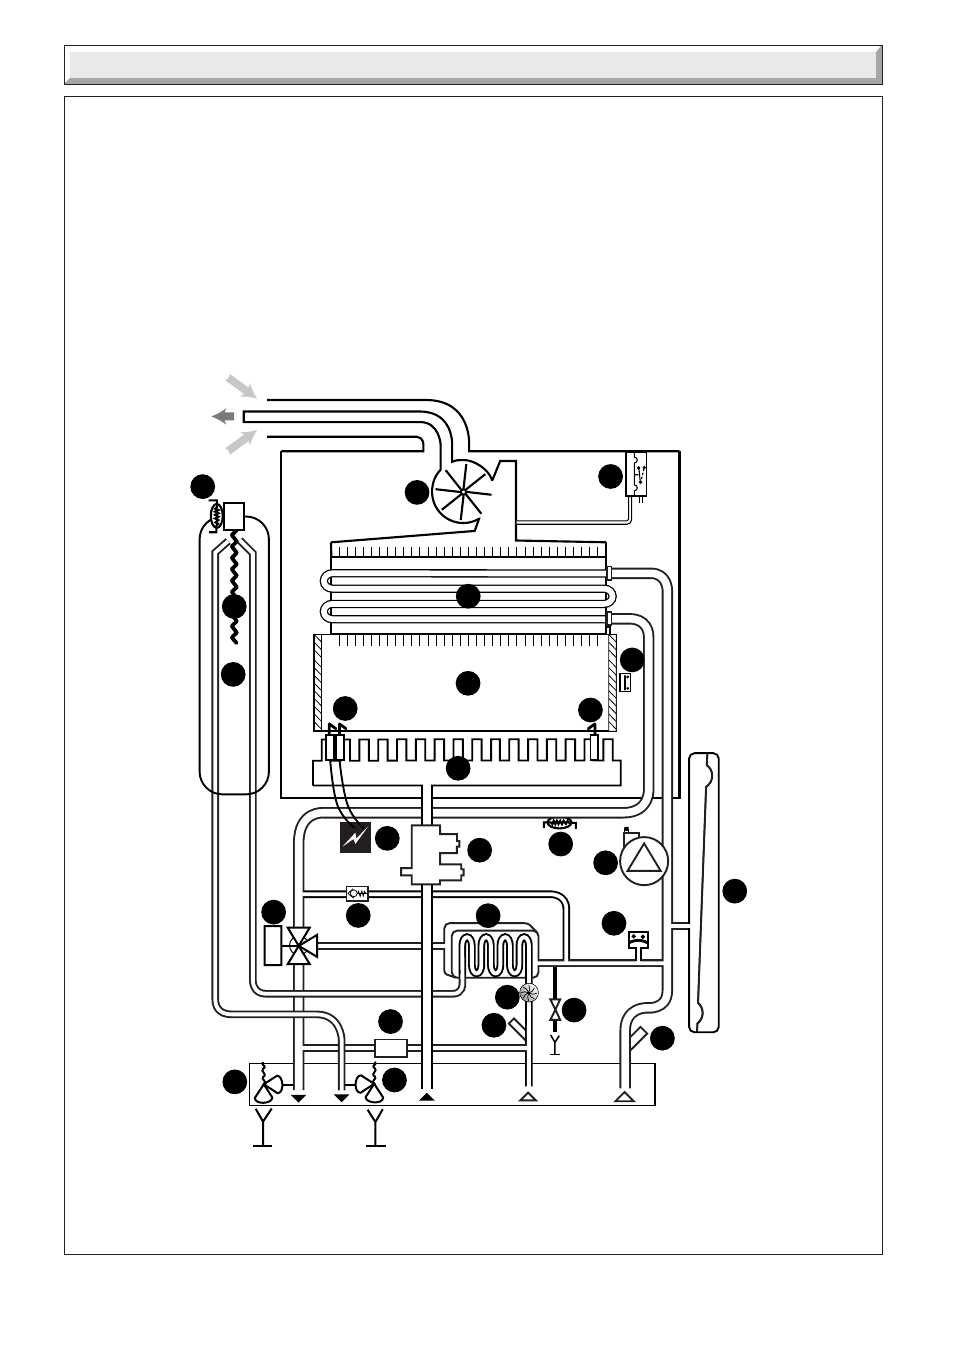 Ab E D C 5 Boiler Schematic Glow Worm 30ci Plus User Manual 3 Way Switch Outlet Page 13 56